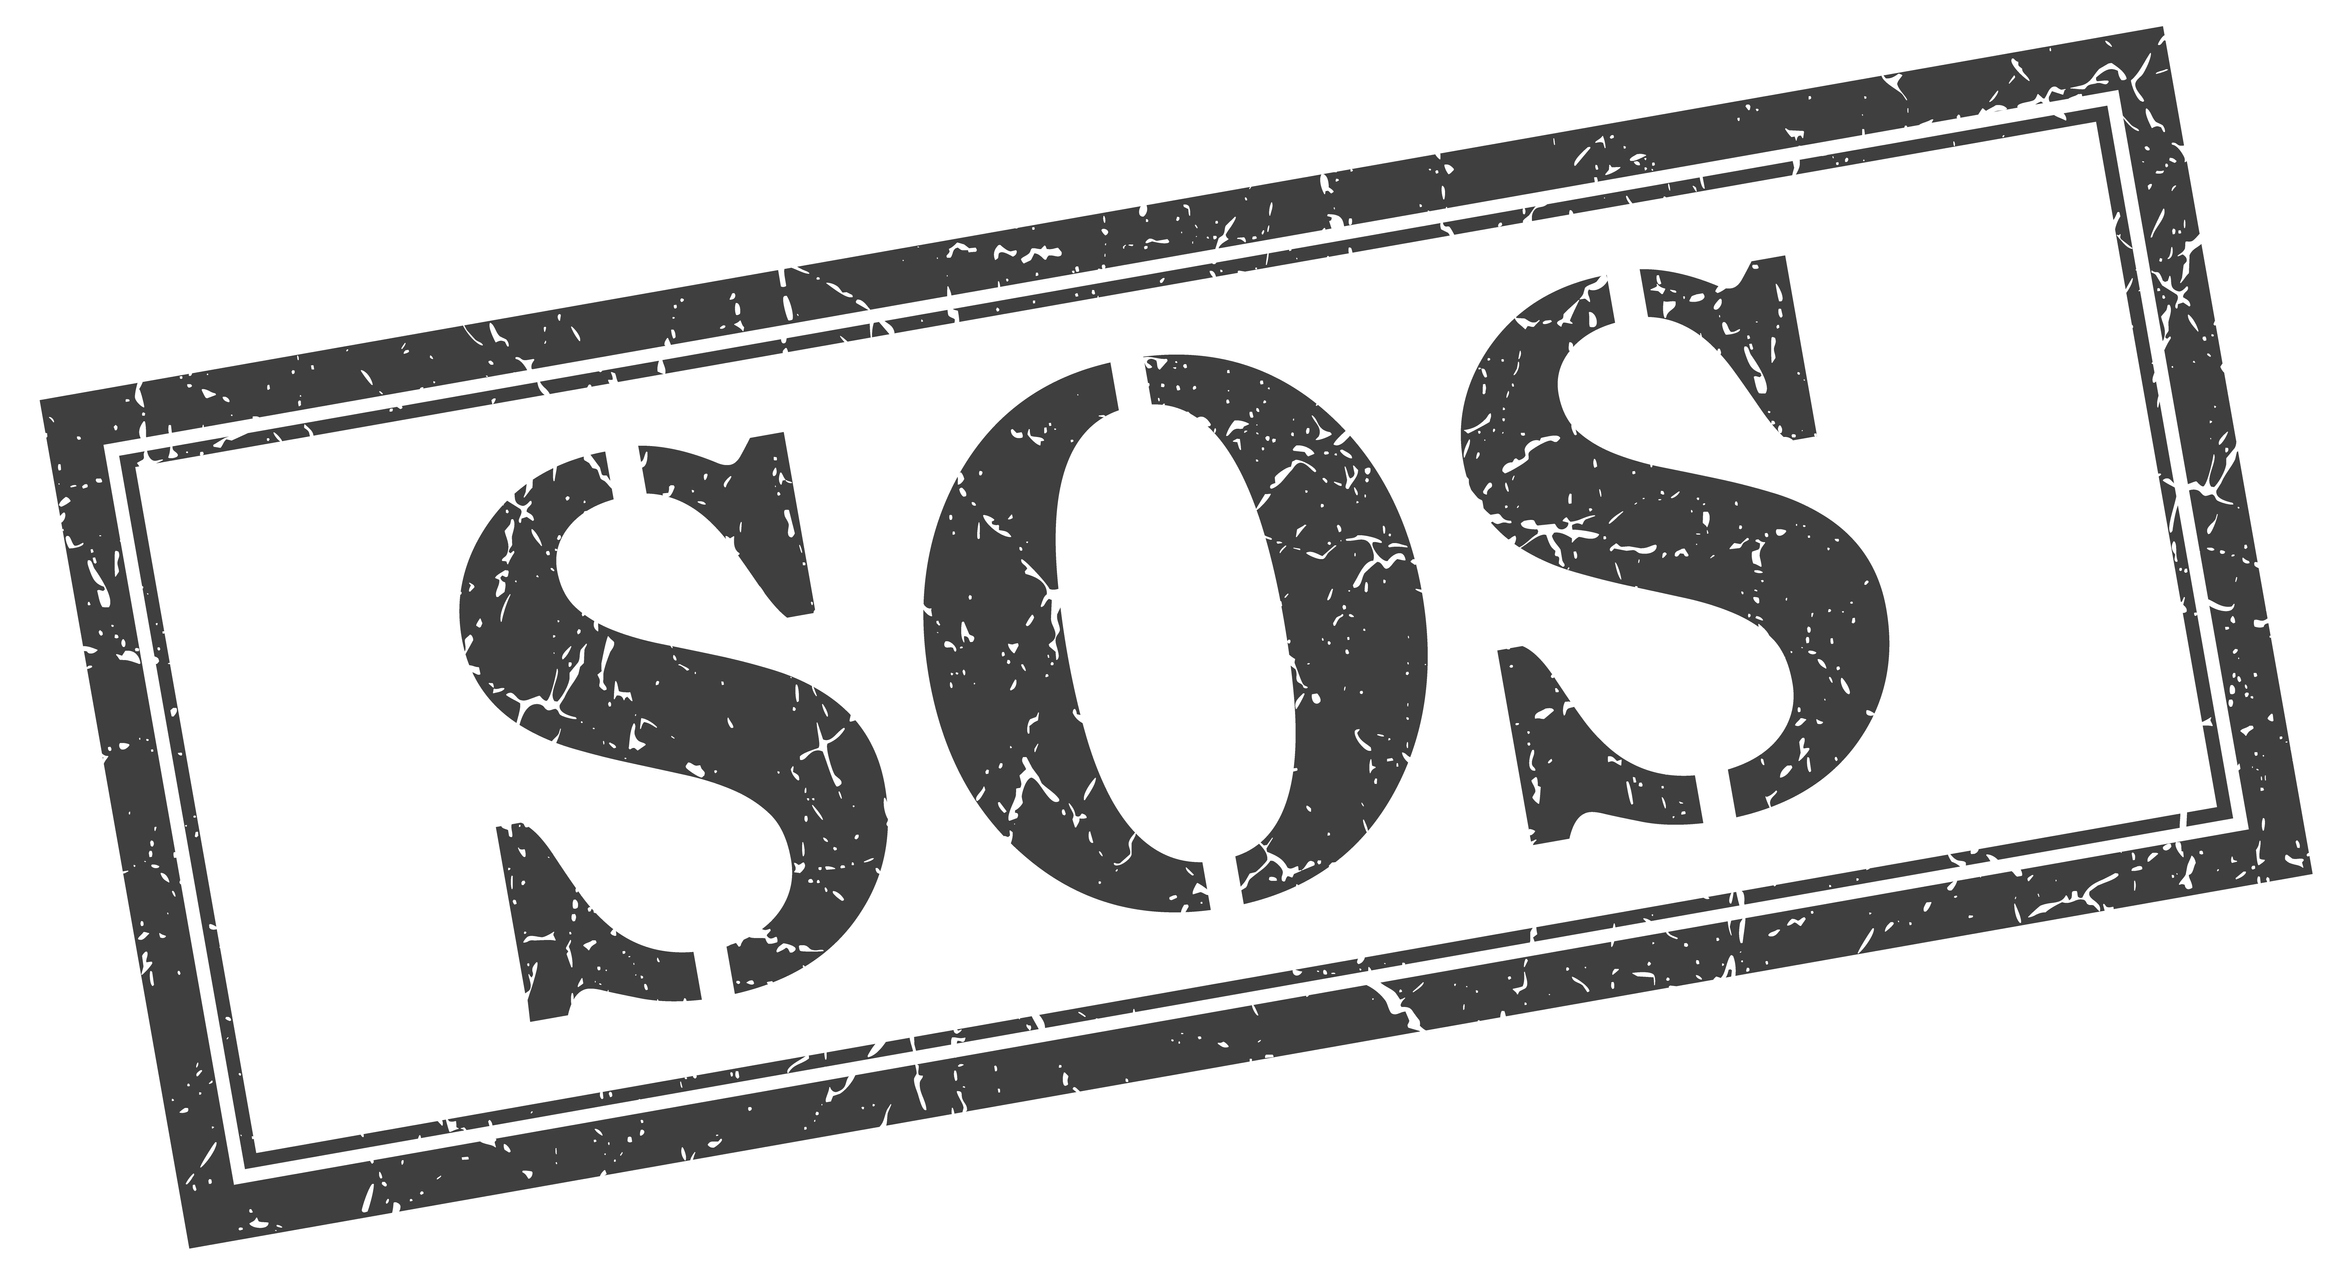 Woman found in wilderness after spelling SOS with rocks